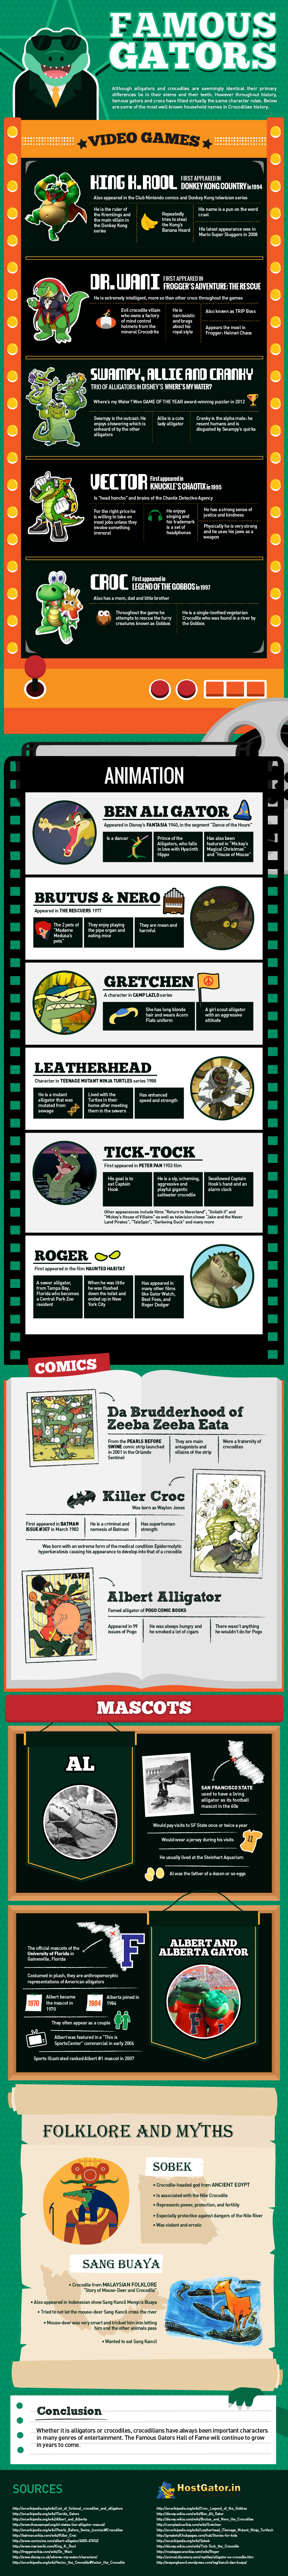 Famous-gators-infographic-(1)